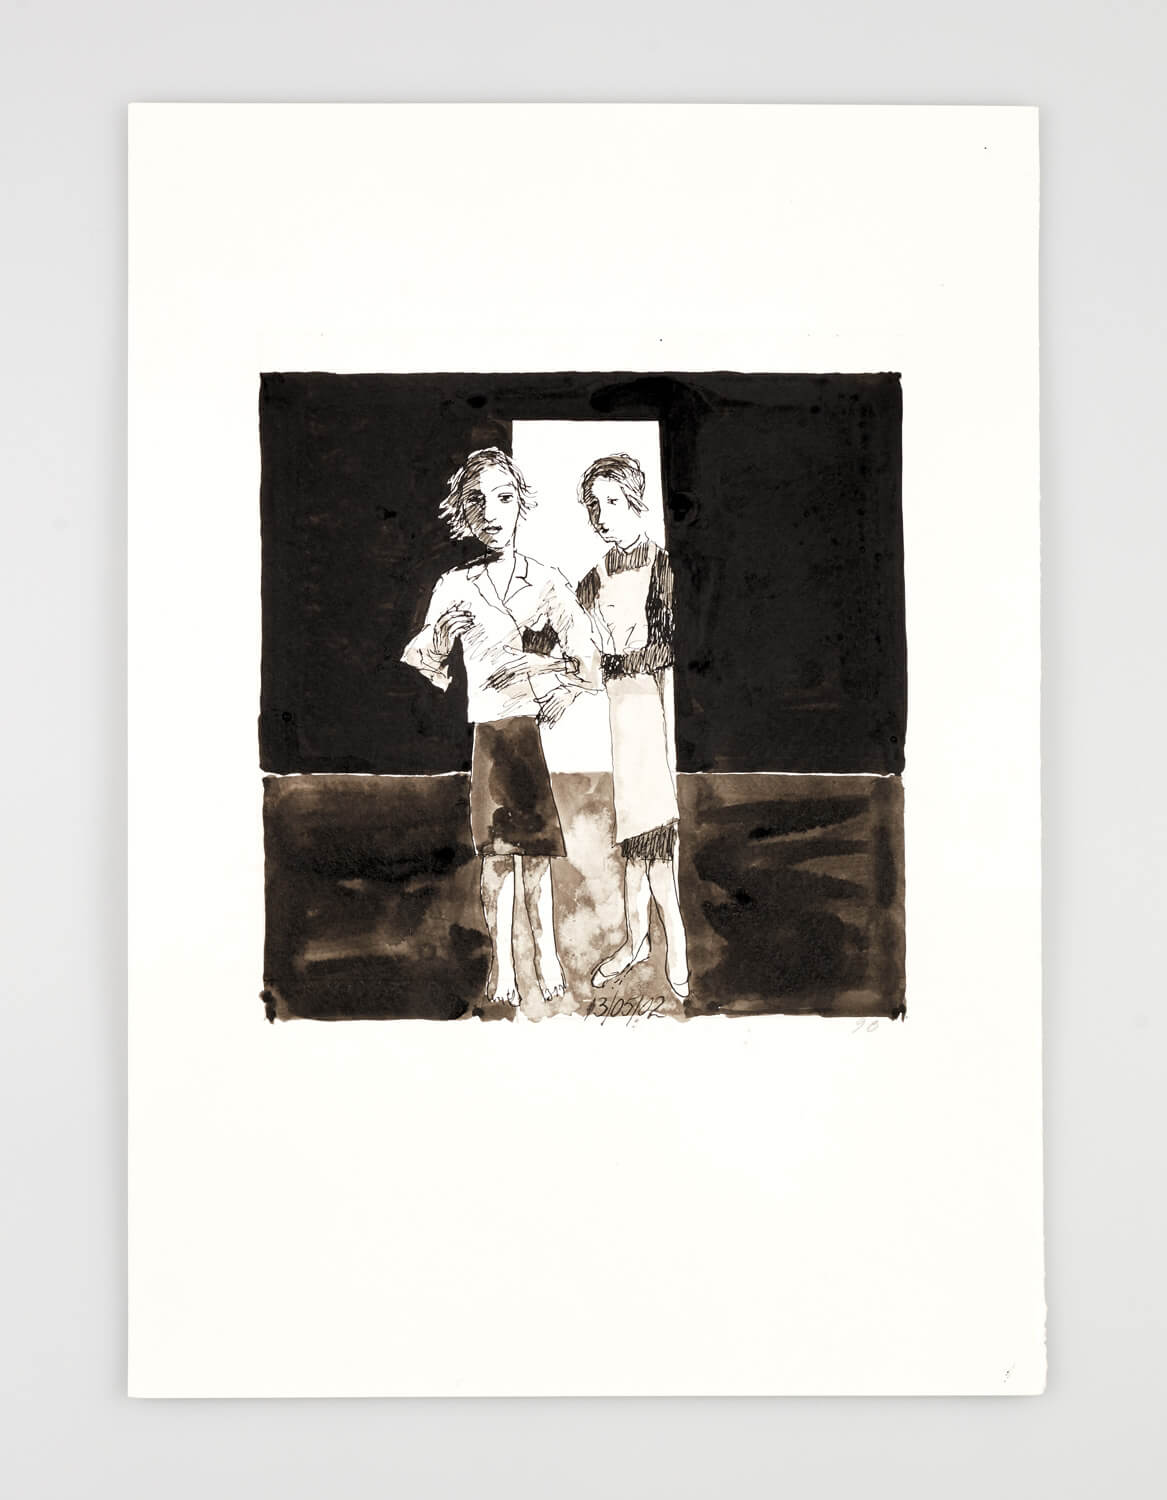 JB070 - Two Women - You look perfect - 2002 - 50 x 35 cm - Indian ink and wash on pape